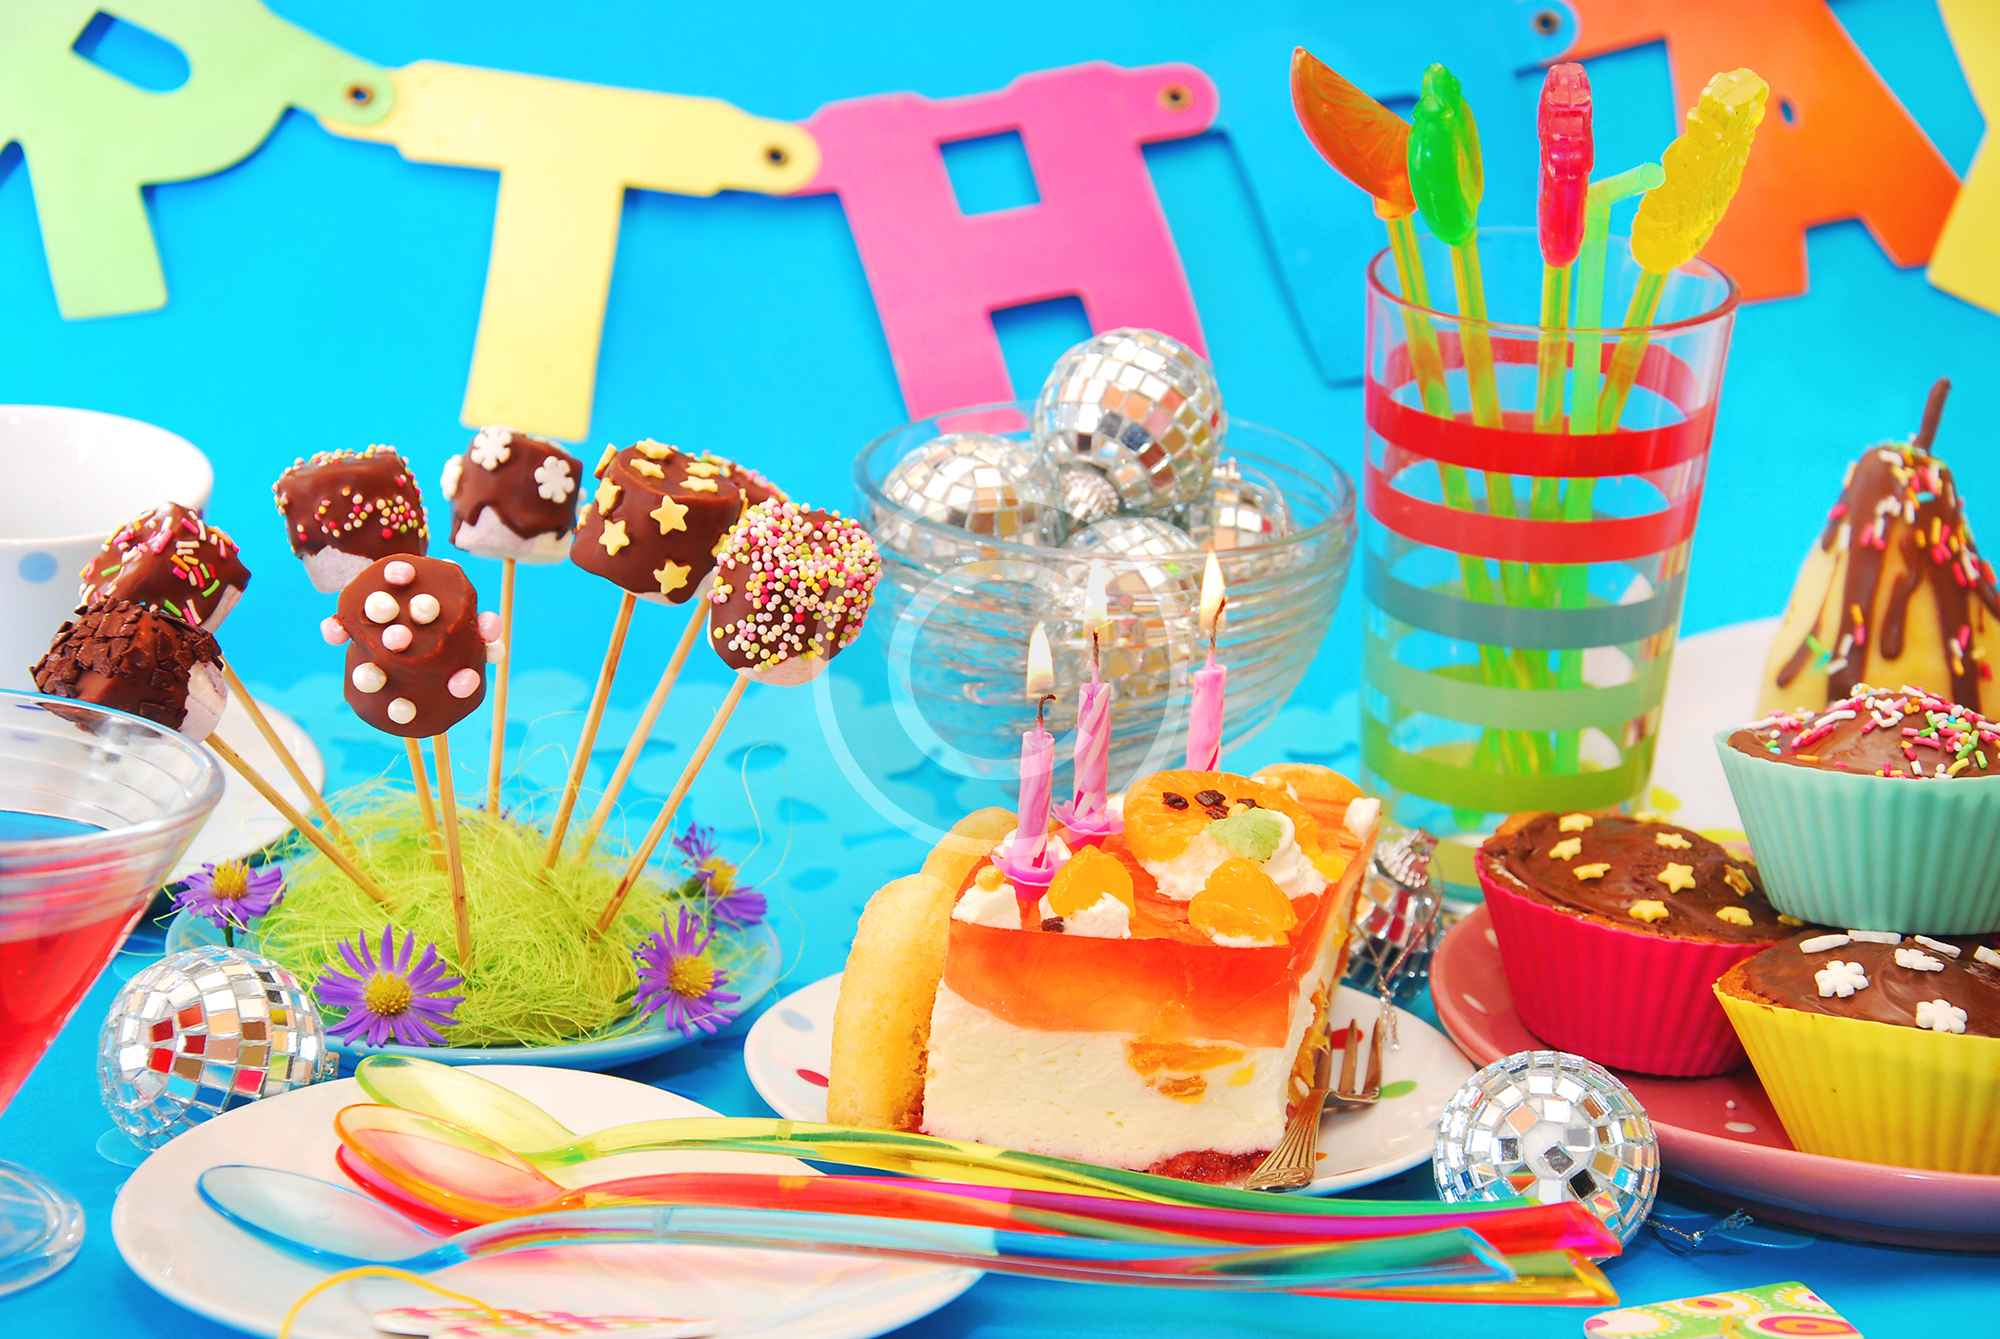 Plannig Children's Parties